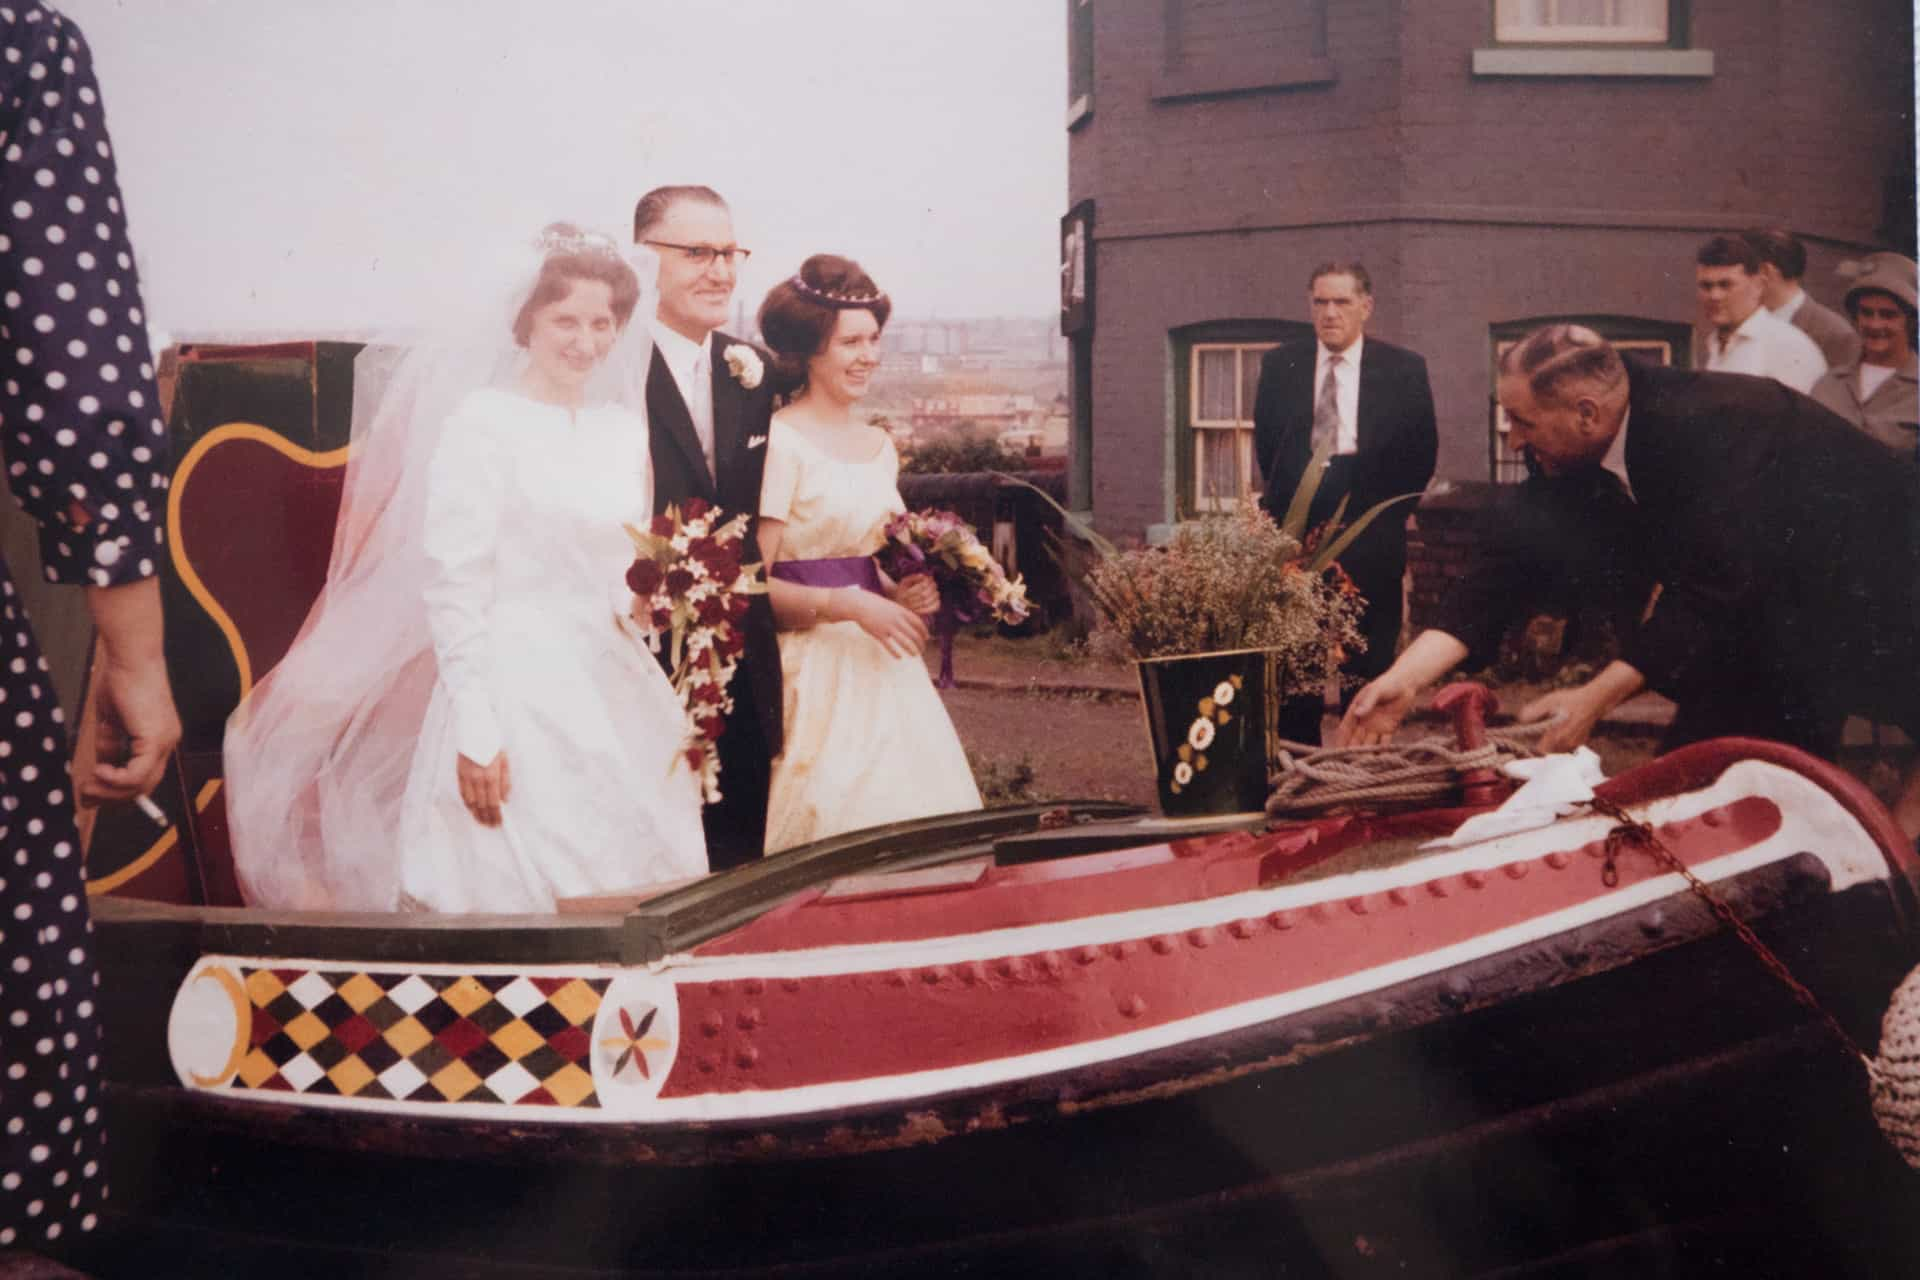 Ruth Collins, neé King, on her way to her Wedding to Conrad Collins on board her friend's boat with her father, Will King and sister, Christine King in 1961.